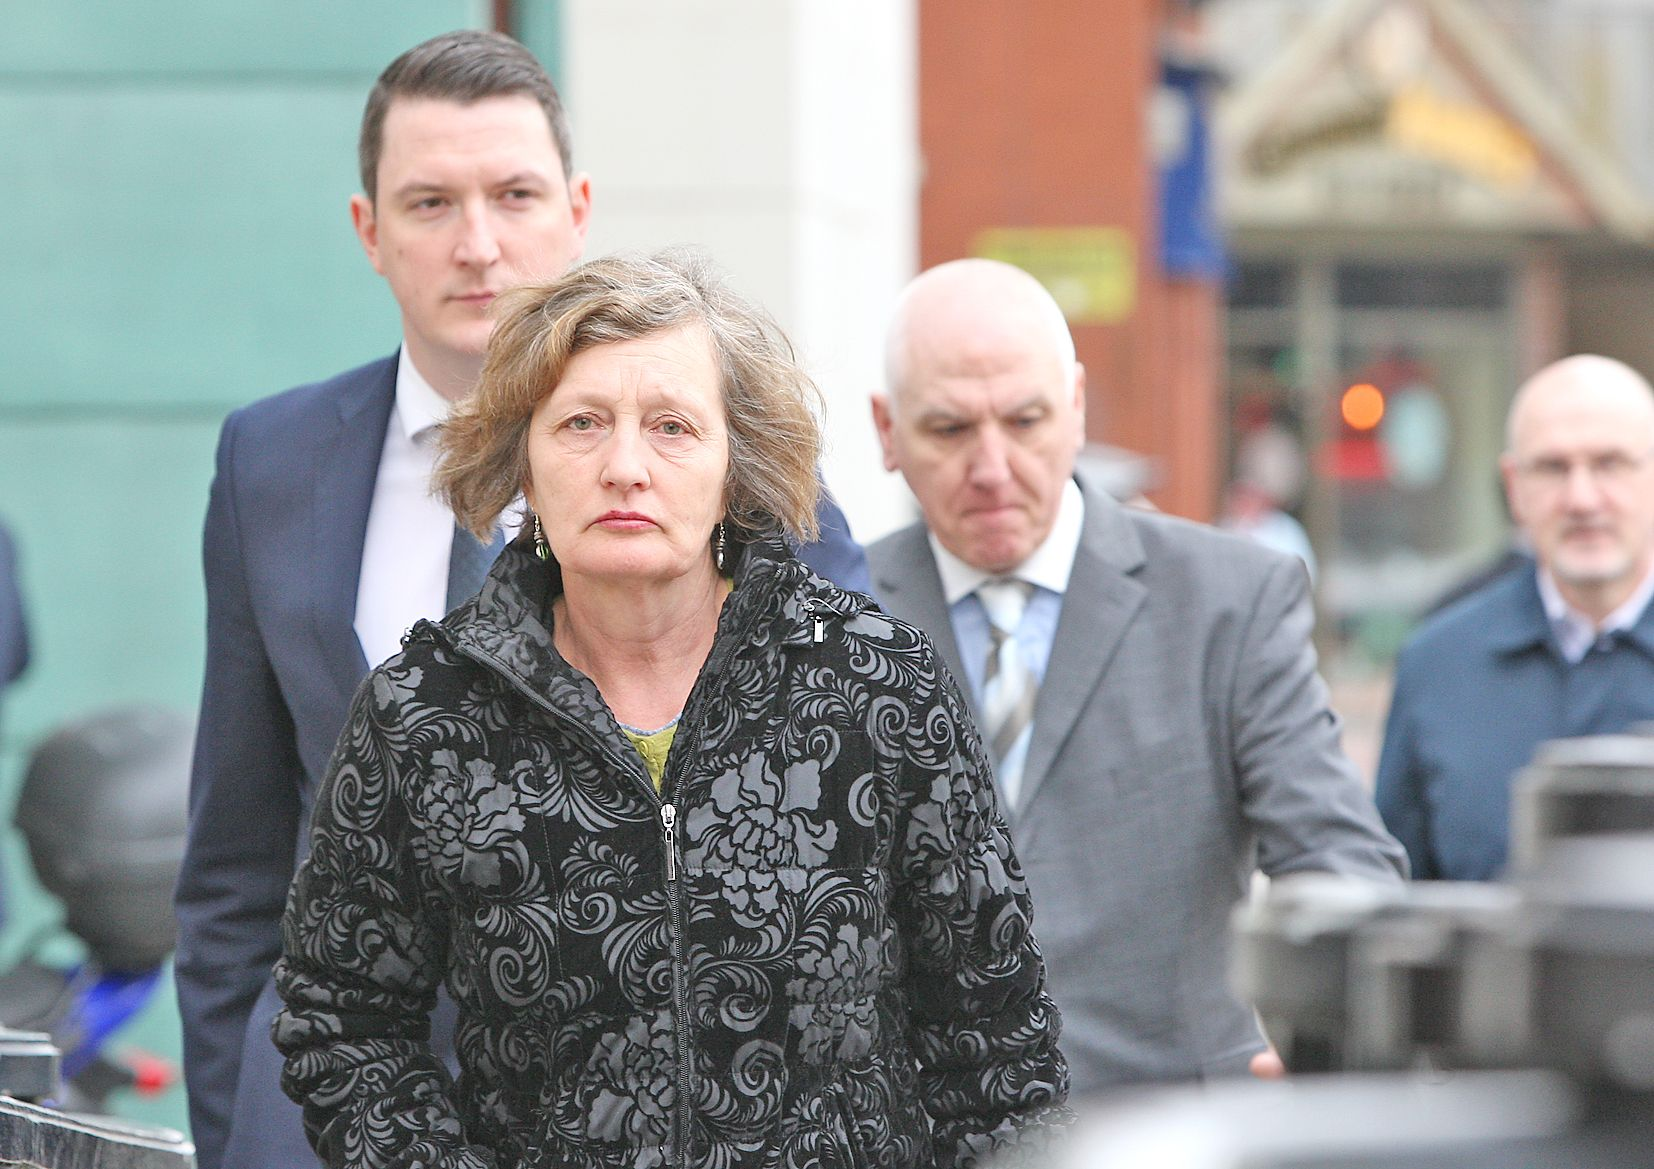 VINDICATED:John and Geraldine Finucane have been campaigning with the wider Finucane family for the truth surrounding Pat's 1989 murder